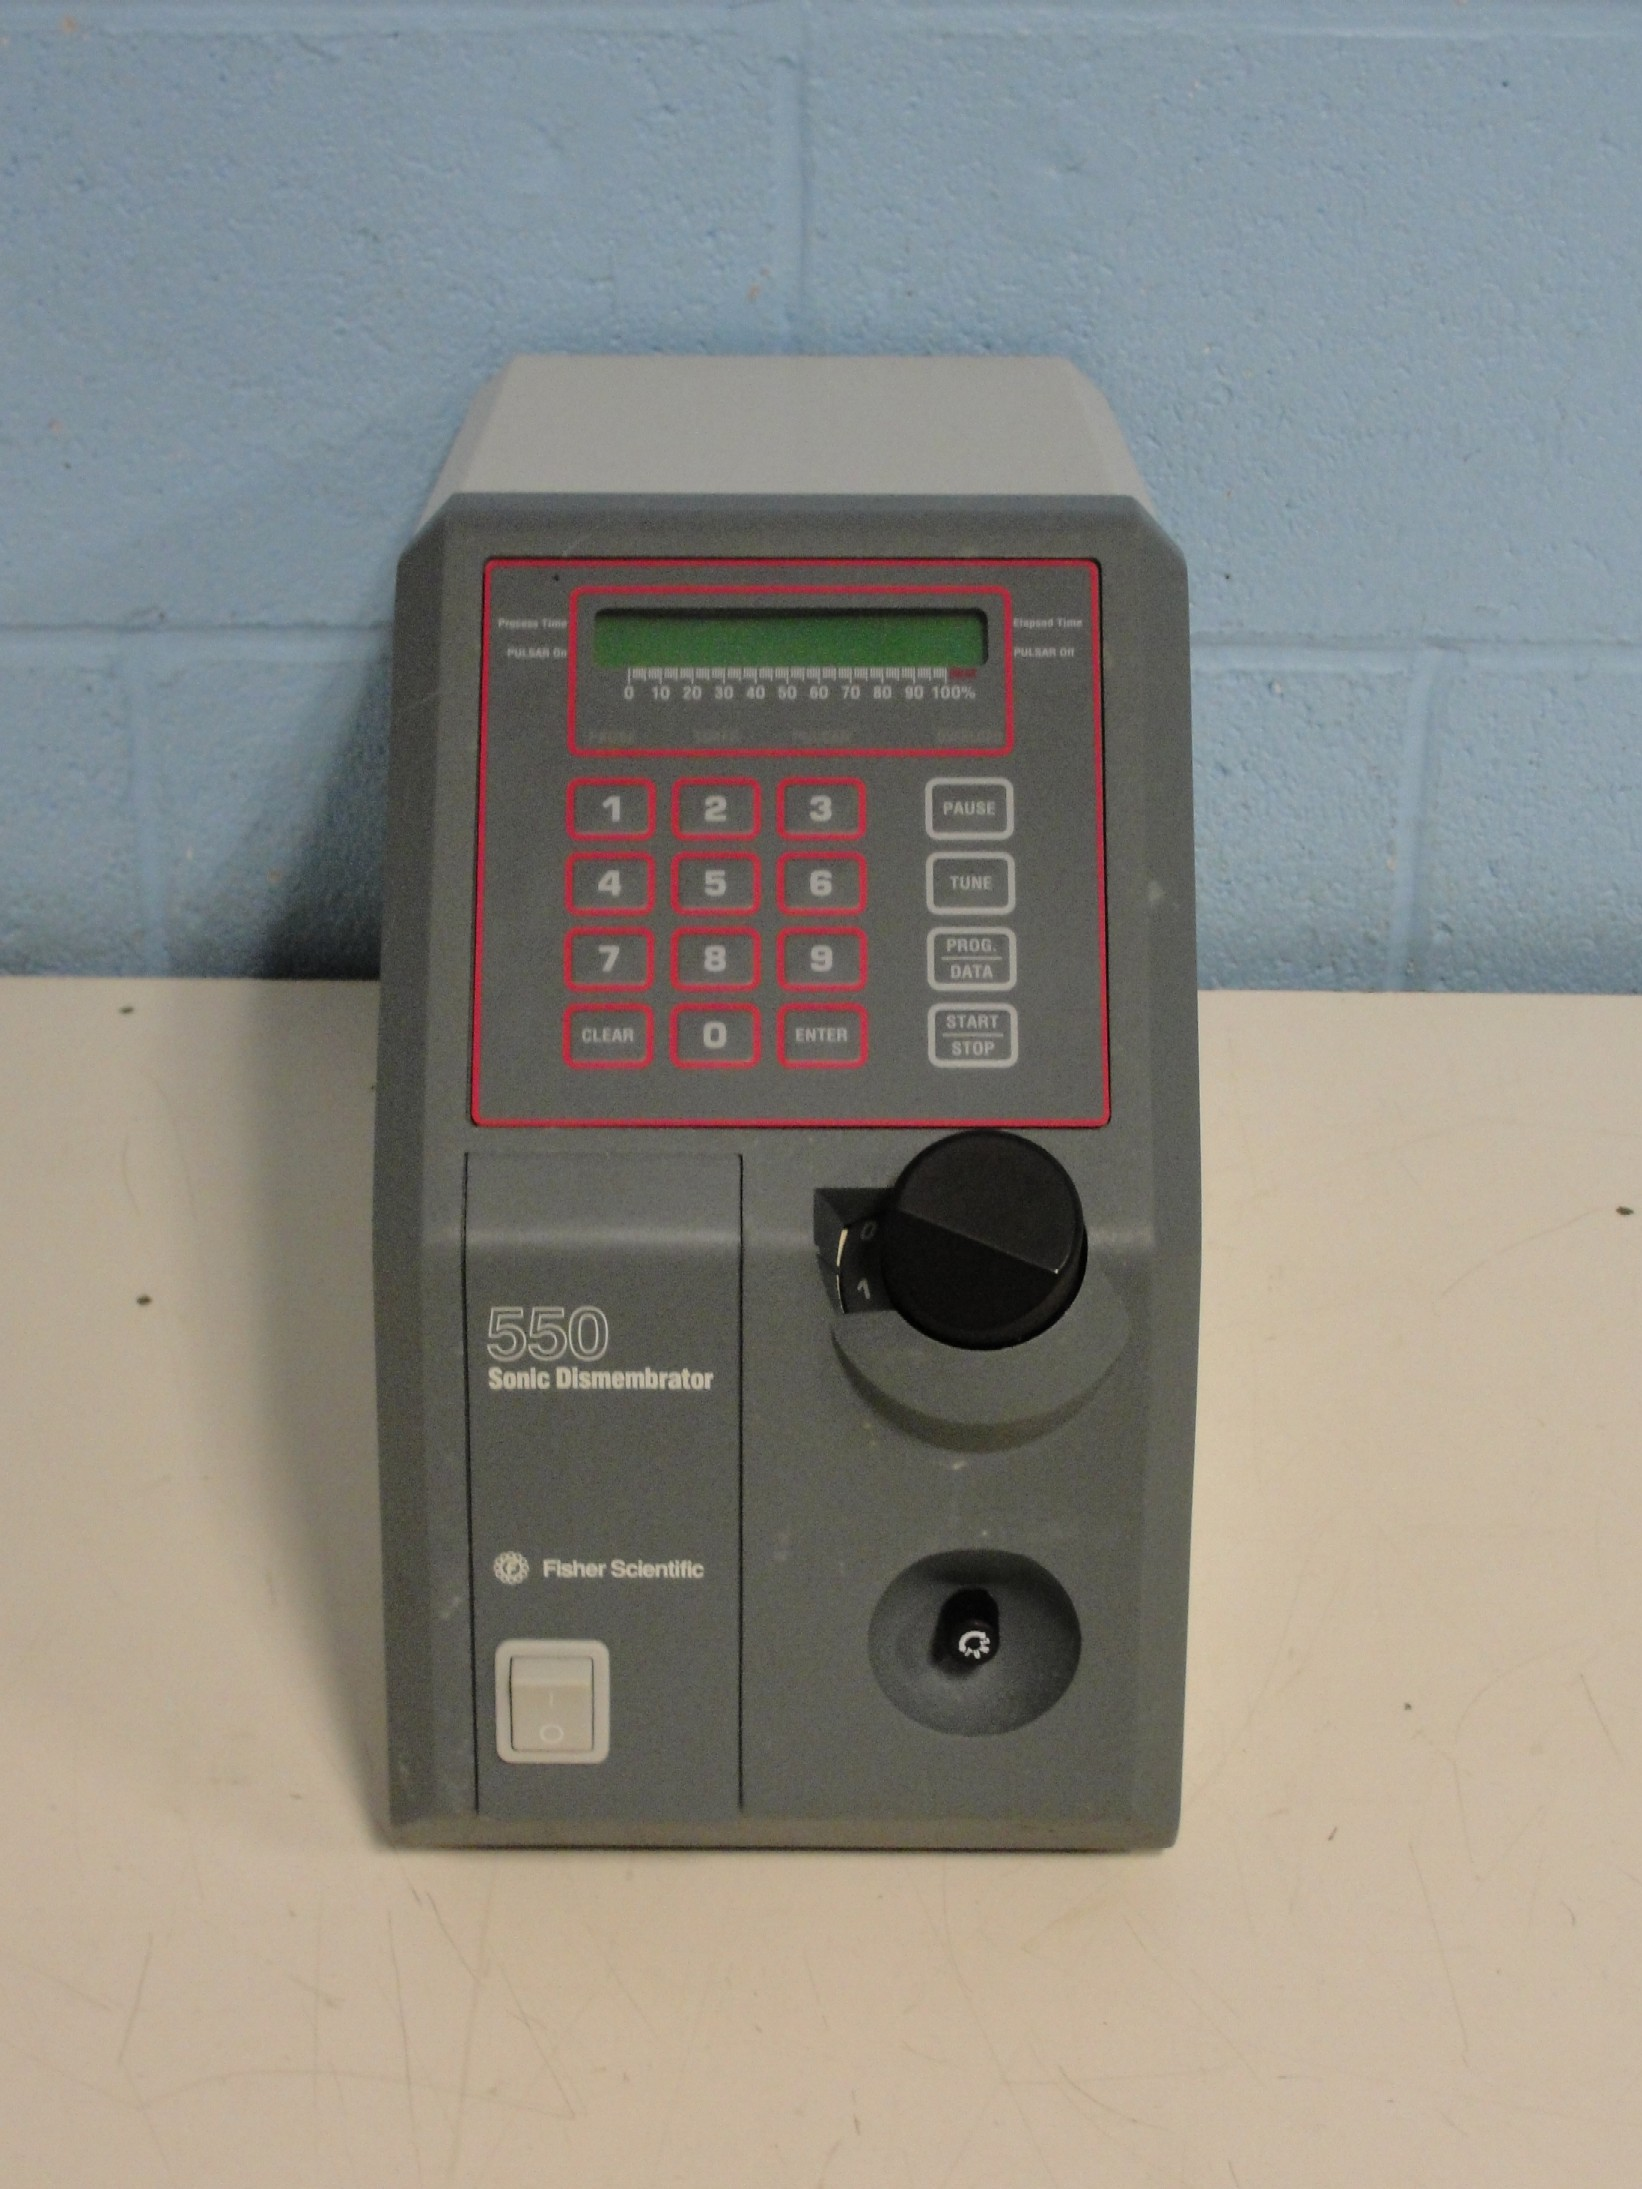 Fisher Scientific F 550 Sonic Dismembrator Image